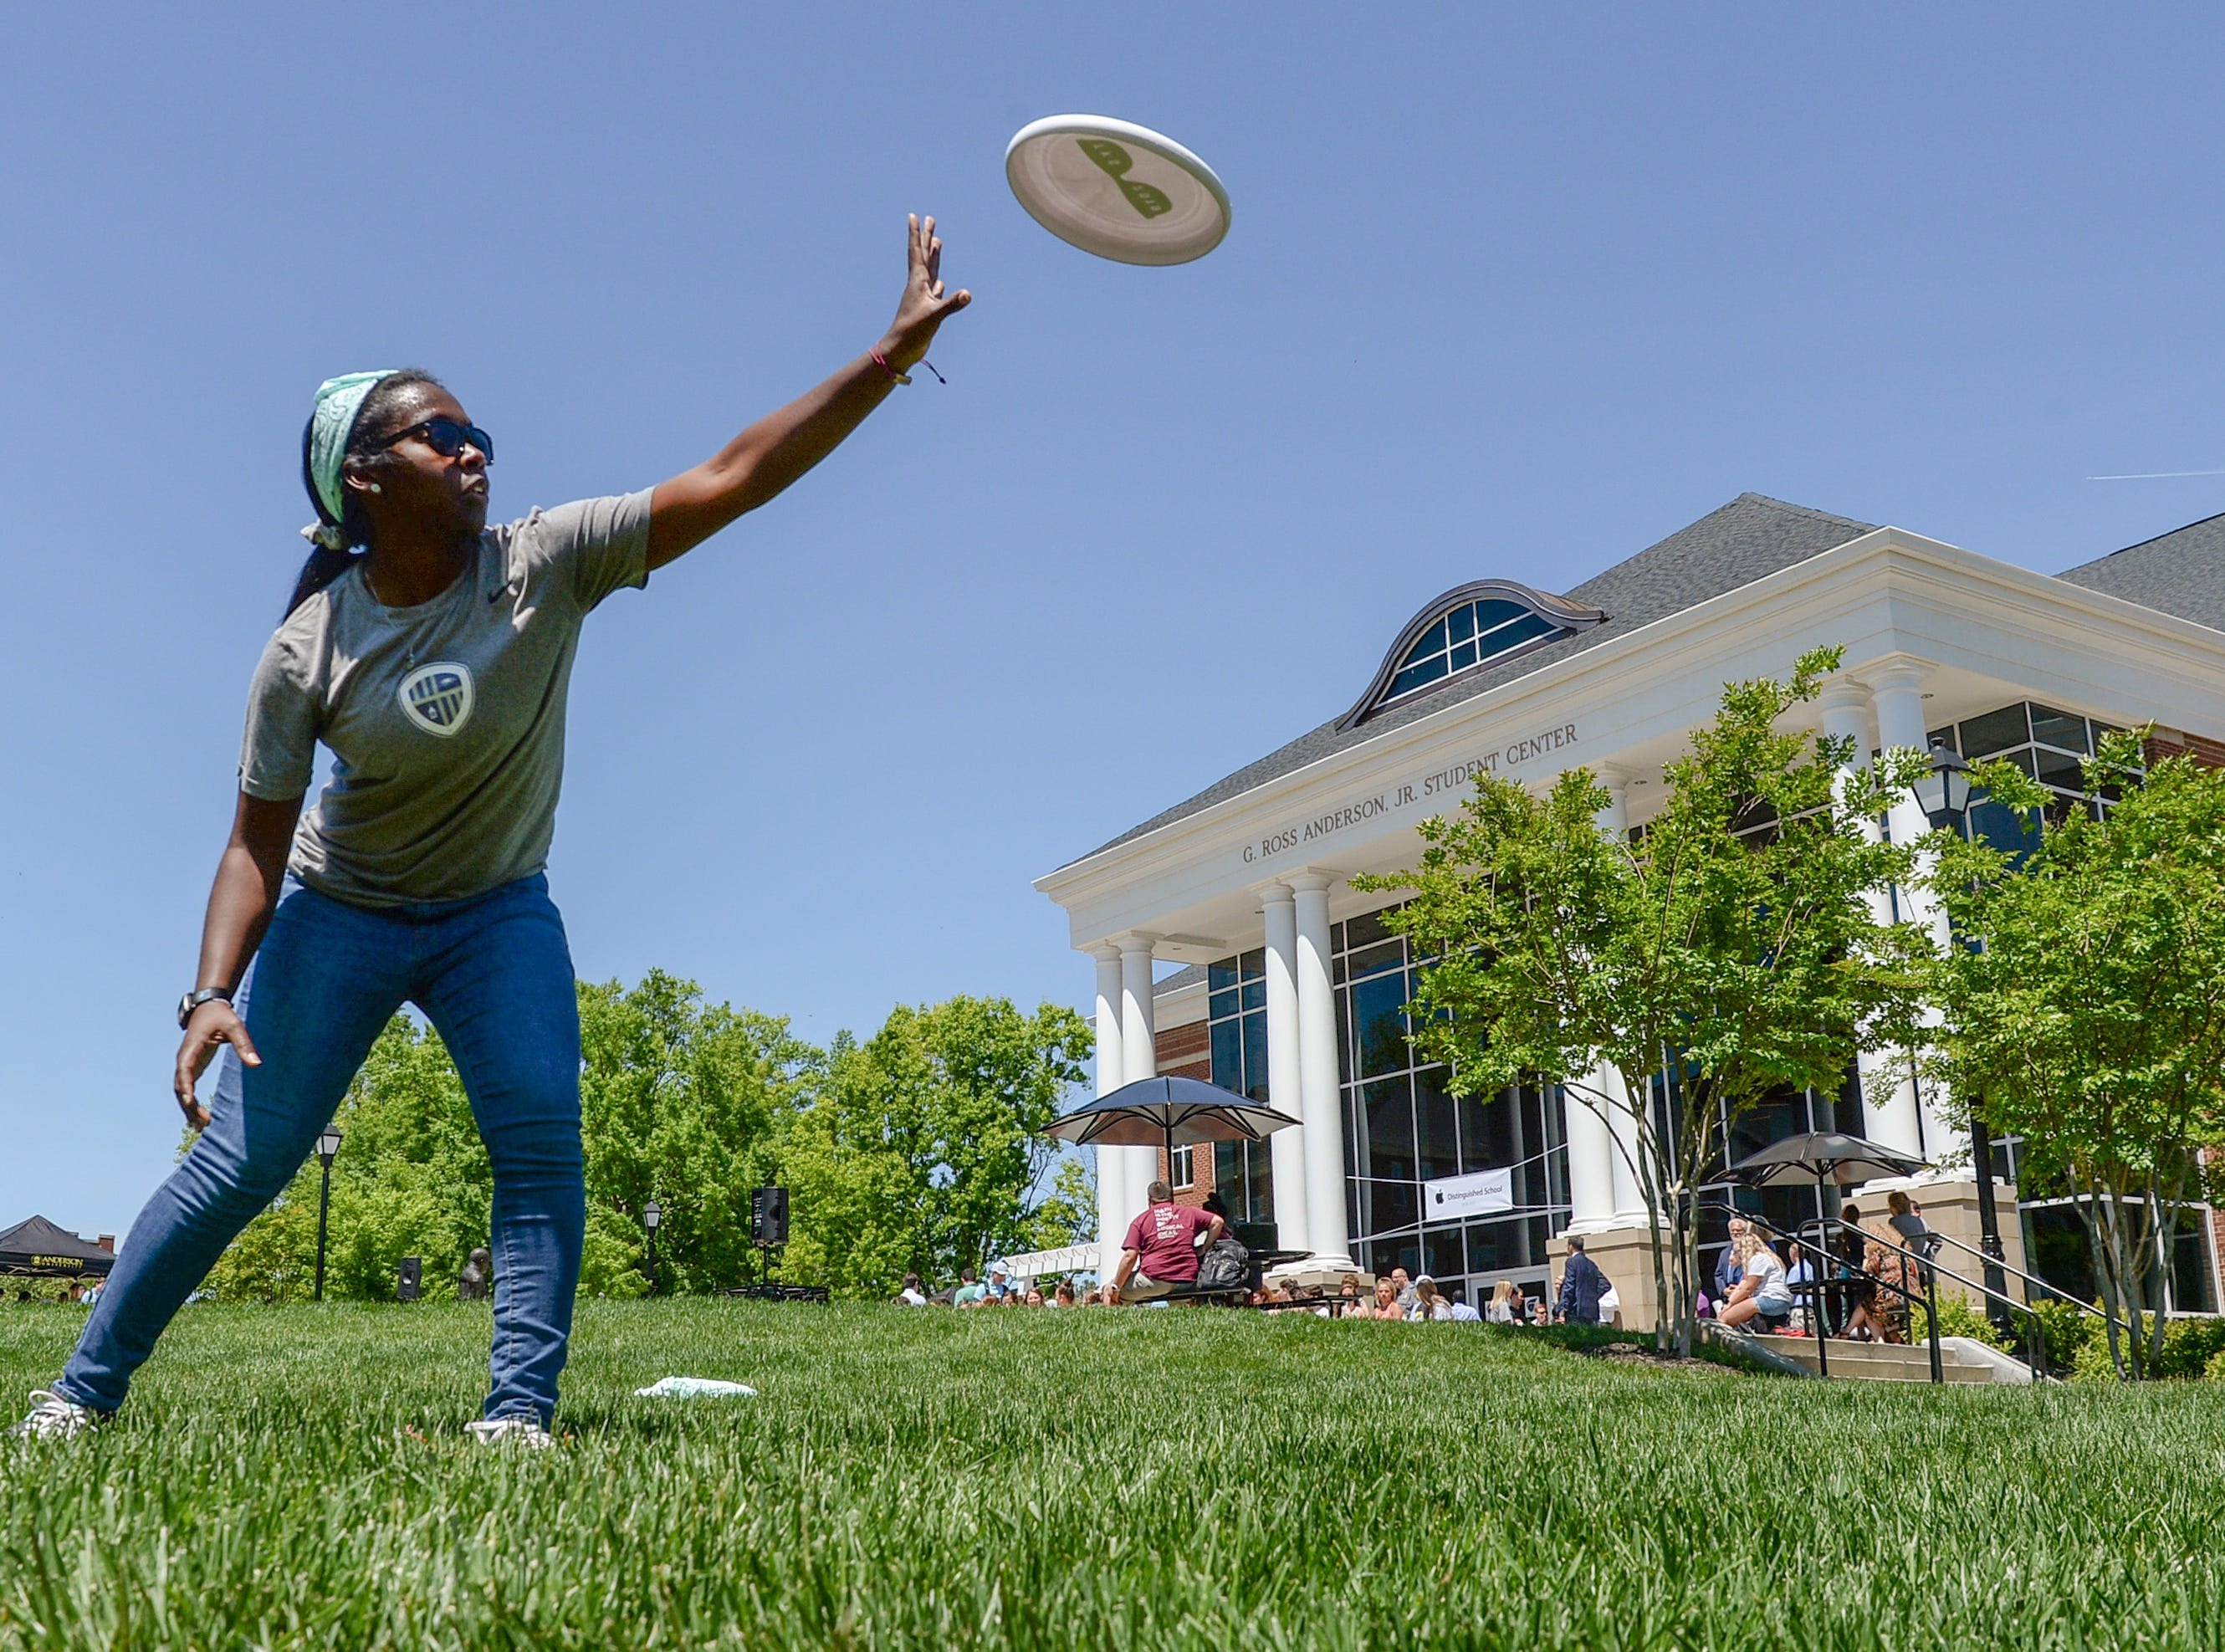 Tiffany Cooley, a sophomore Kinesiology major at Anderson University, catches a plastic flying disc minutes before the school was presented an Apple Distinguished School award at a certificate presentation ceremony in front of the G. Ross Anderson Student Center at Anderson University in Anderson Tuesday. President Evans Whitaker accepted the certificate from Anne Van Middlesworth, a National Higher Education Development Manager for Apple before two hundred students, faculty and guests. It was the third time receiving the distinction since the school started a digital learning initiative in 2011.